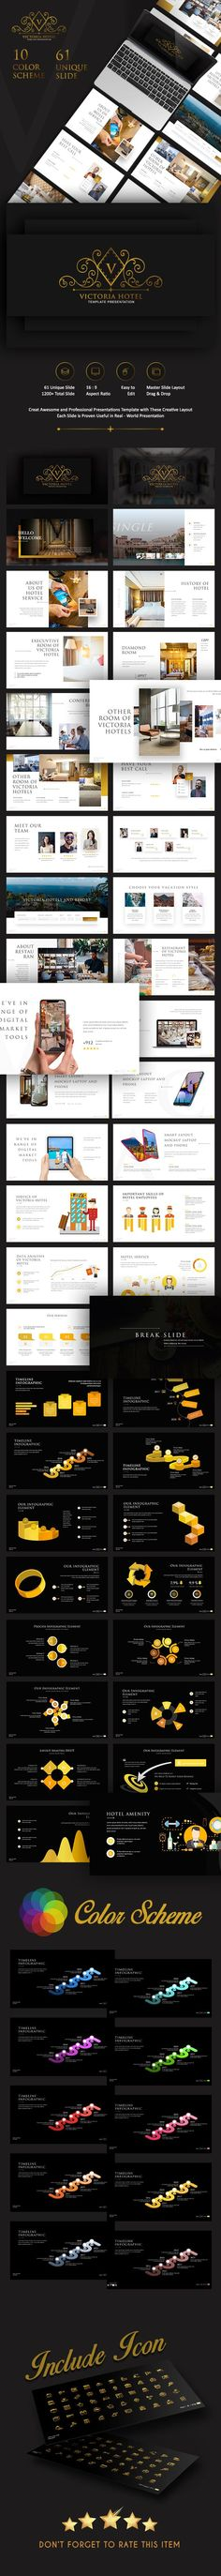 Buy Victoria Hotel Keynote Template by Slidesignus on GraphicRiver. Description : The best Keynote templates for business hotel presentation, minimalist, elegant, and certainly professi. Powerpoint Presentation Templates, Keynote Template, Text Pictures, Creative Pictures, Web Design, Graphic Design, Creative Design, Data Visualization, Presentation Design